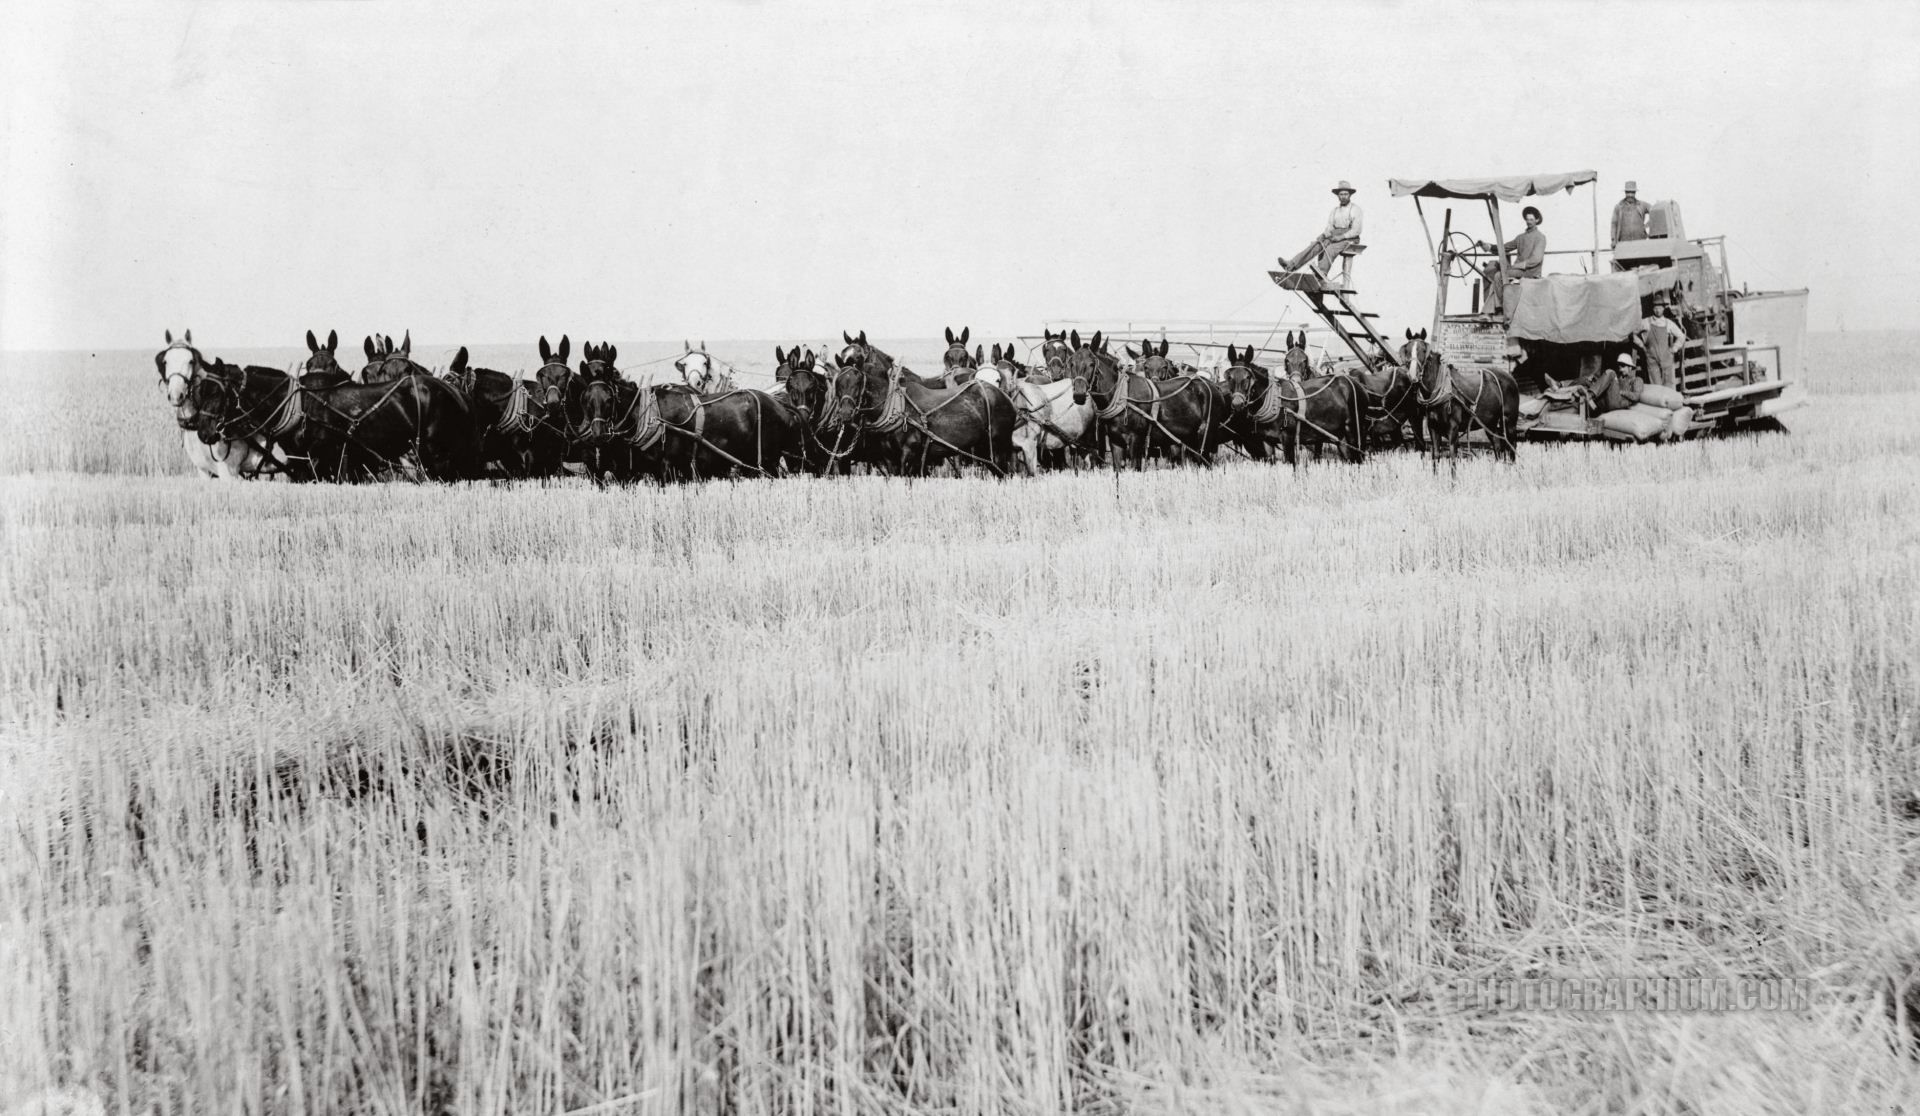 Harvesting Wheat: Spokane, Washington 1910